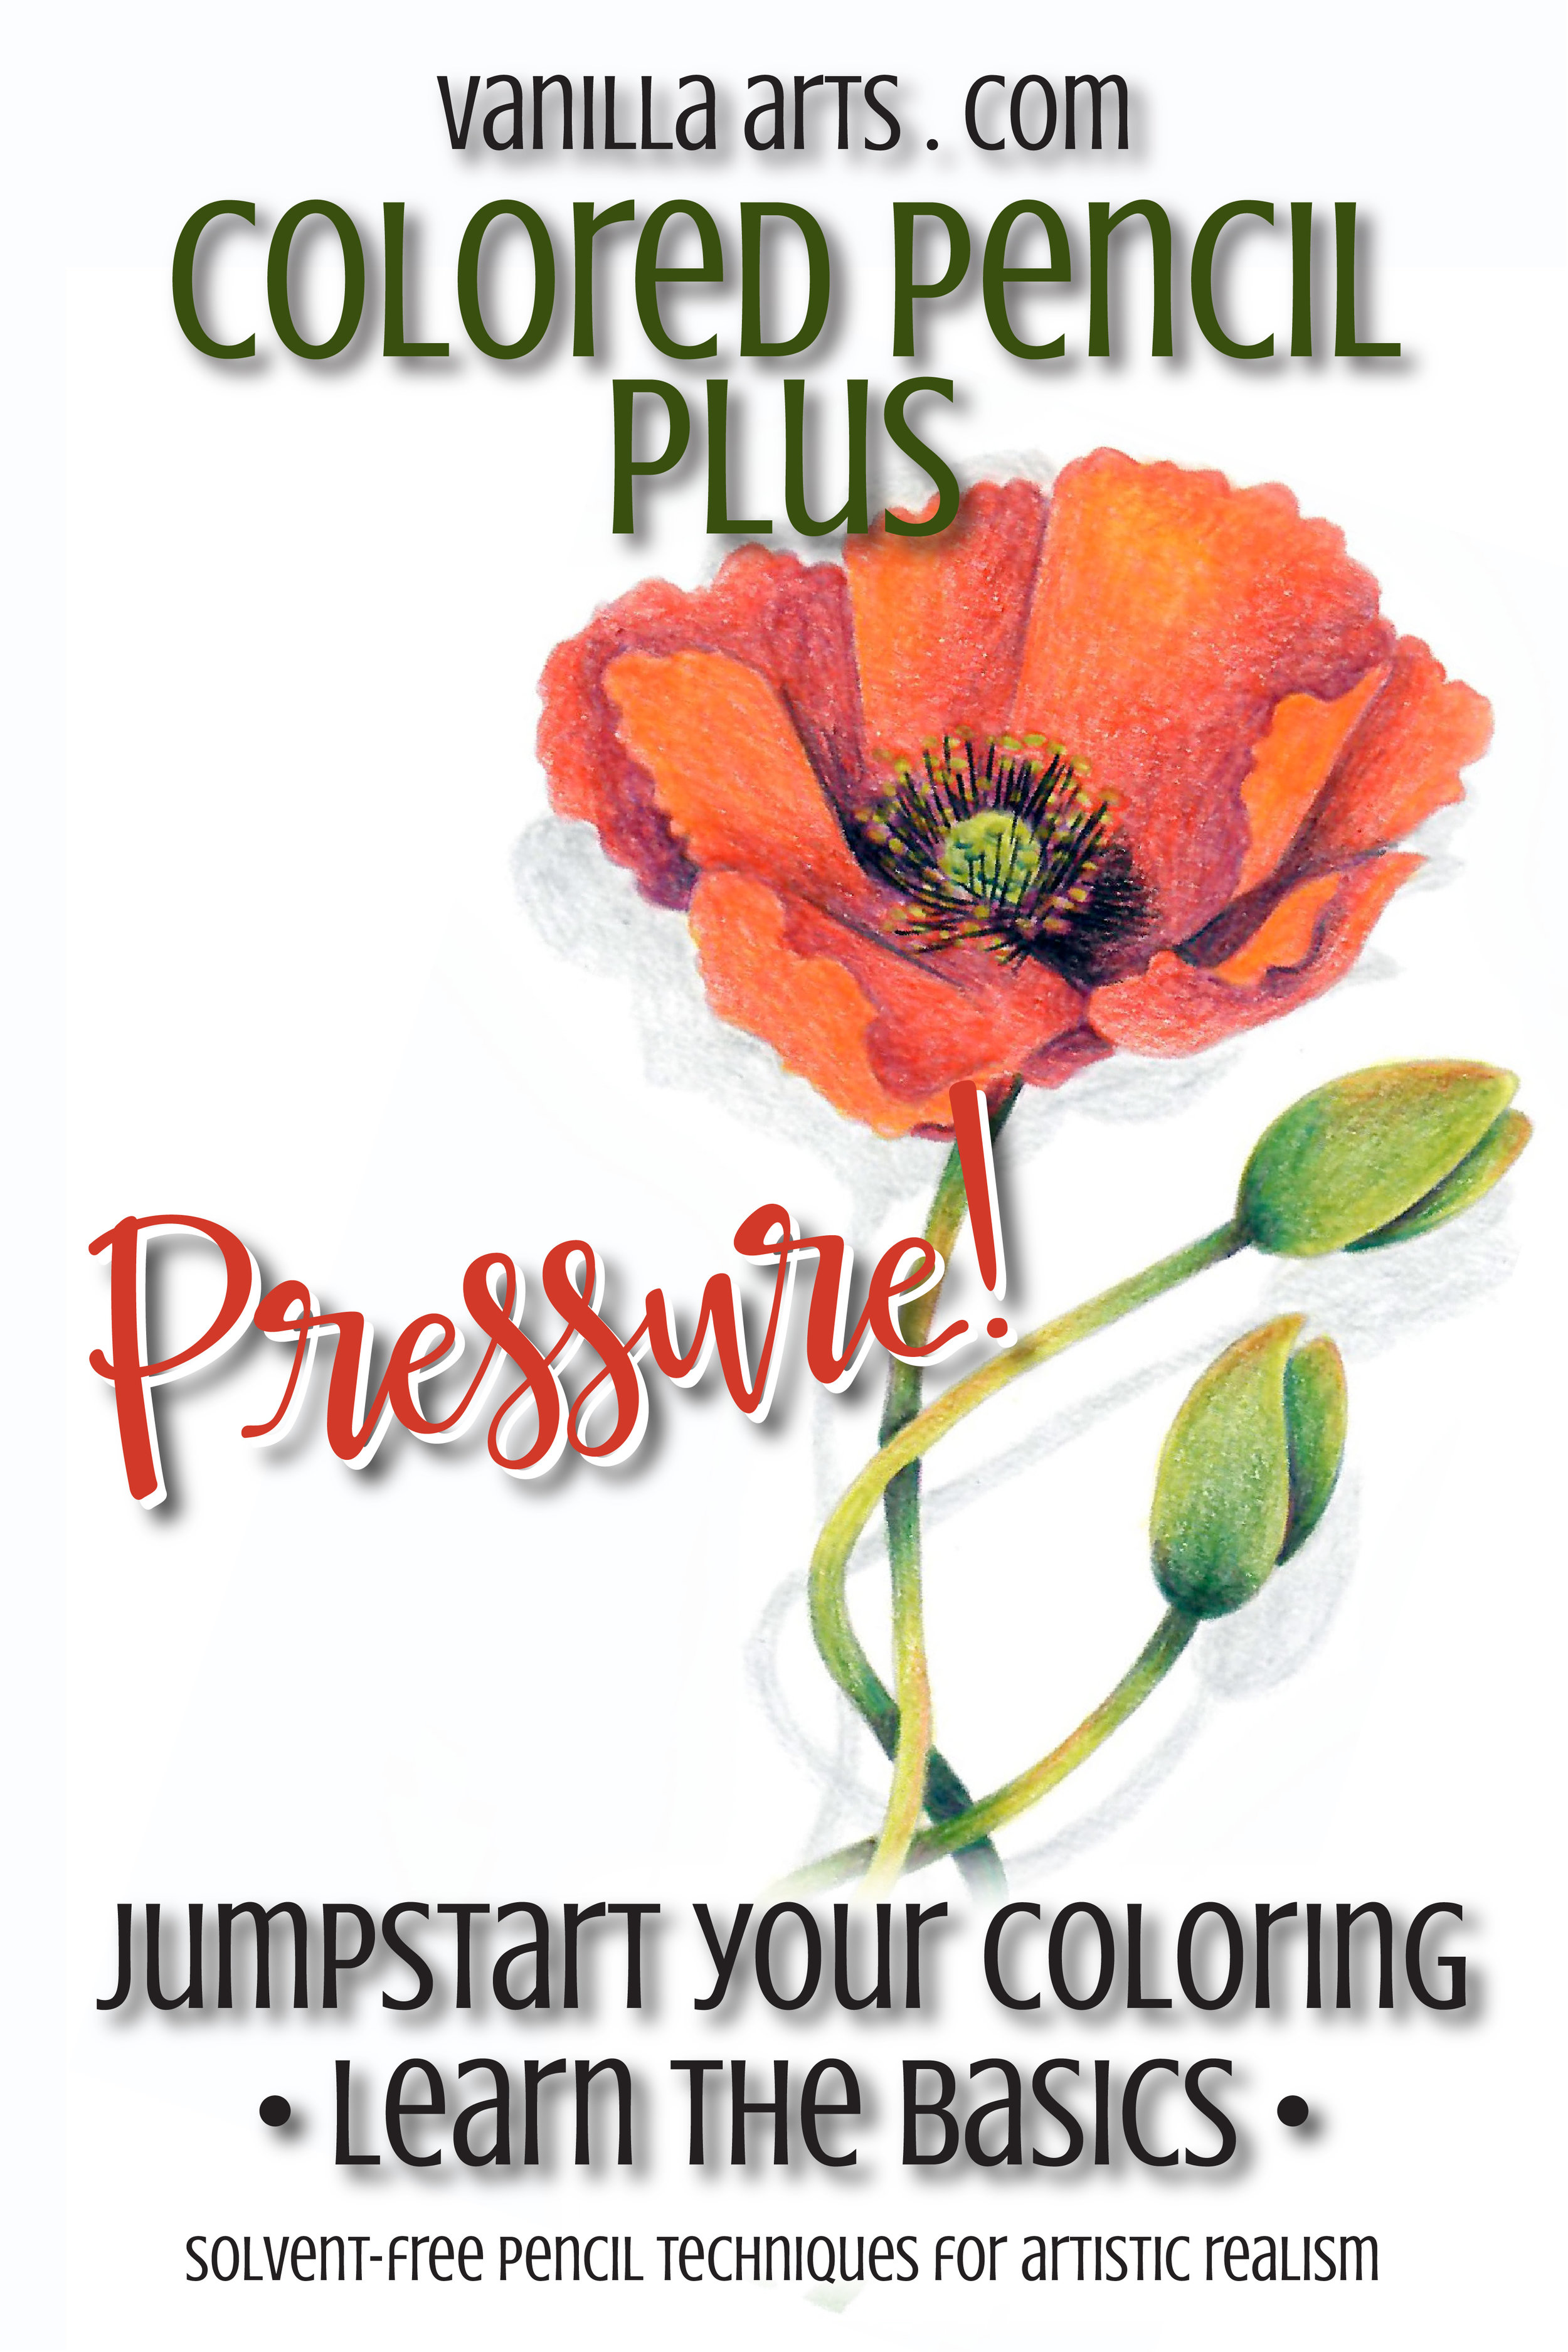 Colored Pencil Plus- 12 week online colored pencil course takes you from beginner to WOW! Learn artistic techniques with solvent-free methods. Begin a lifetime of artistic expression. | ColoredPencilPlus.com